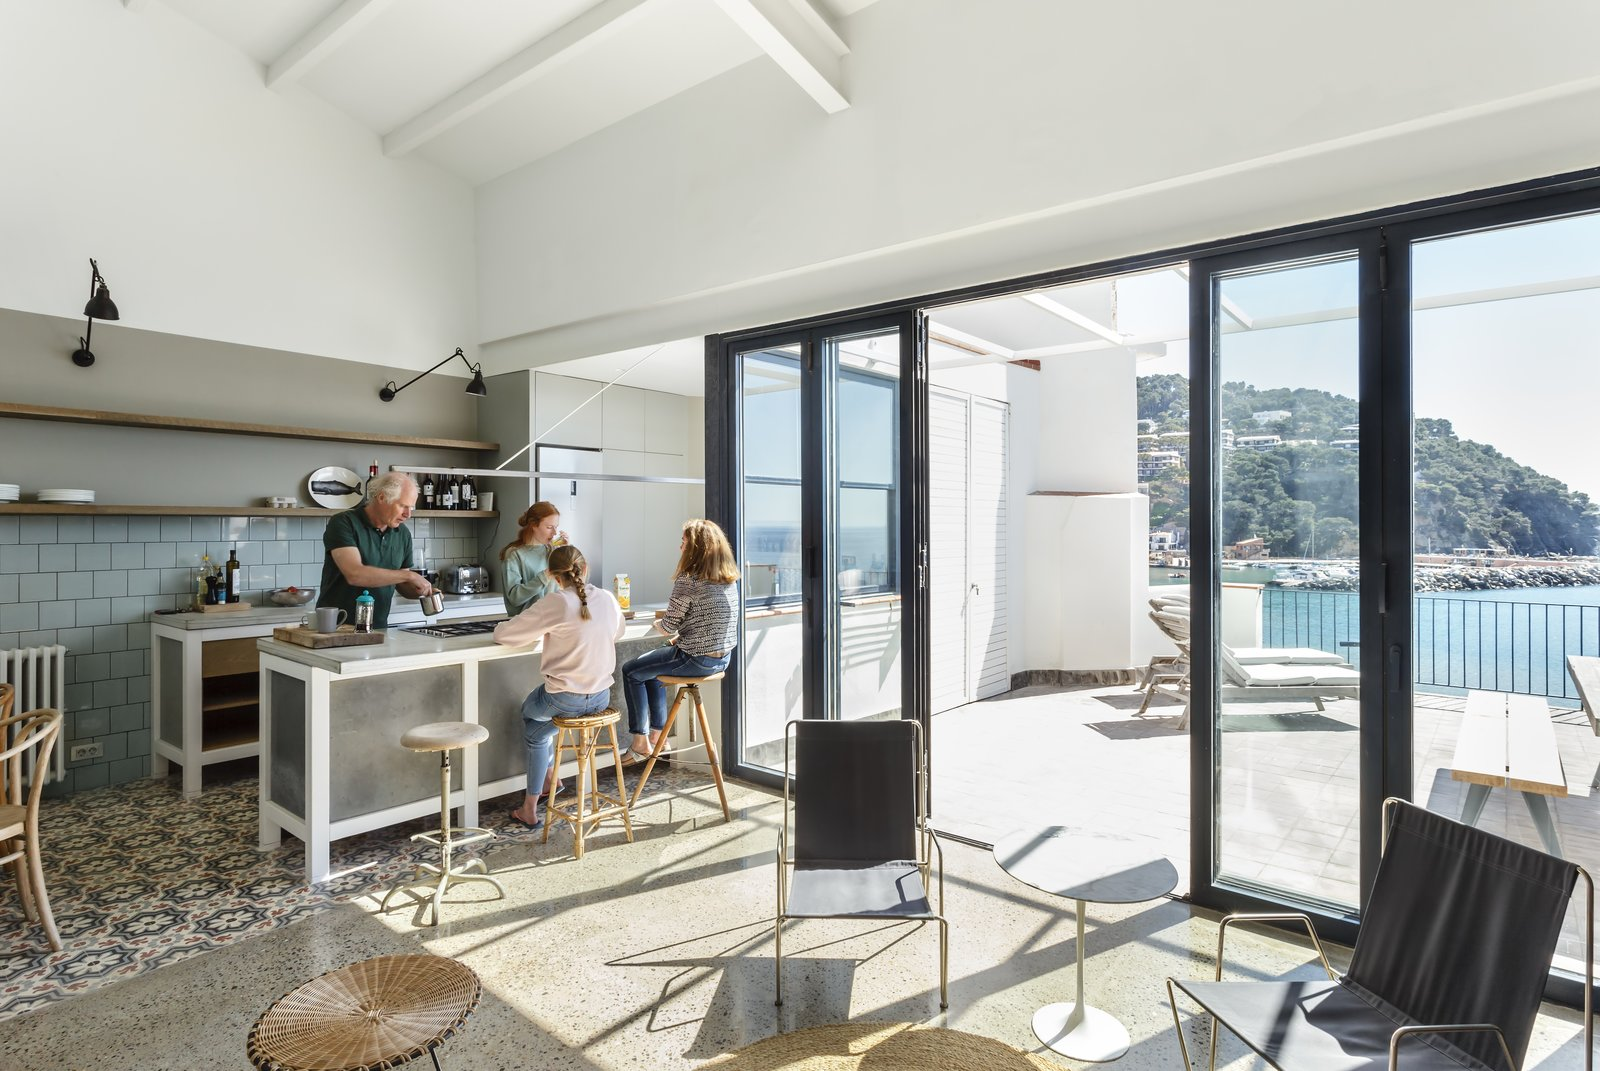 Photo 4 of 16 in A Careful Renovation Brings New Life to a Family's Heritage Home on the Spanish Coast